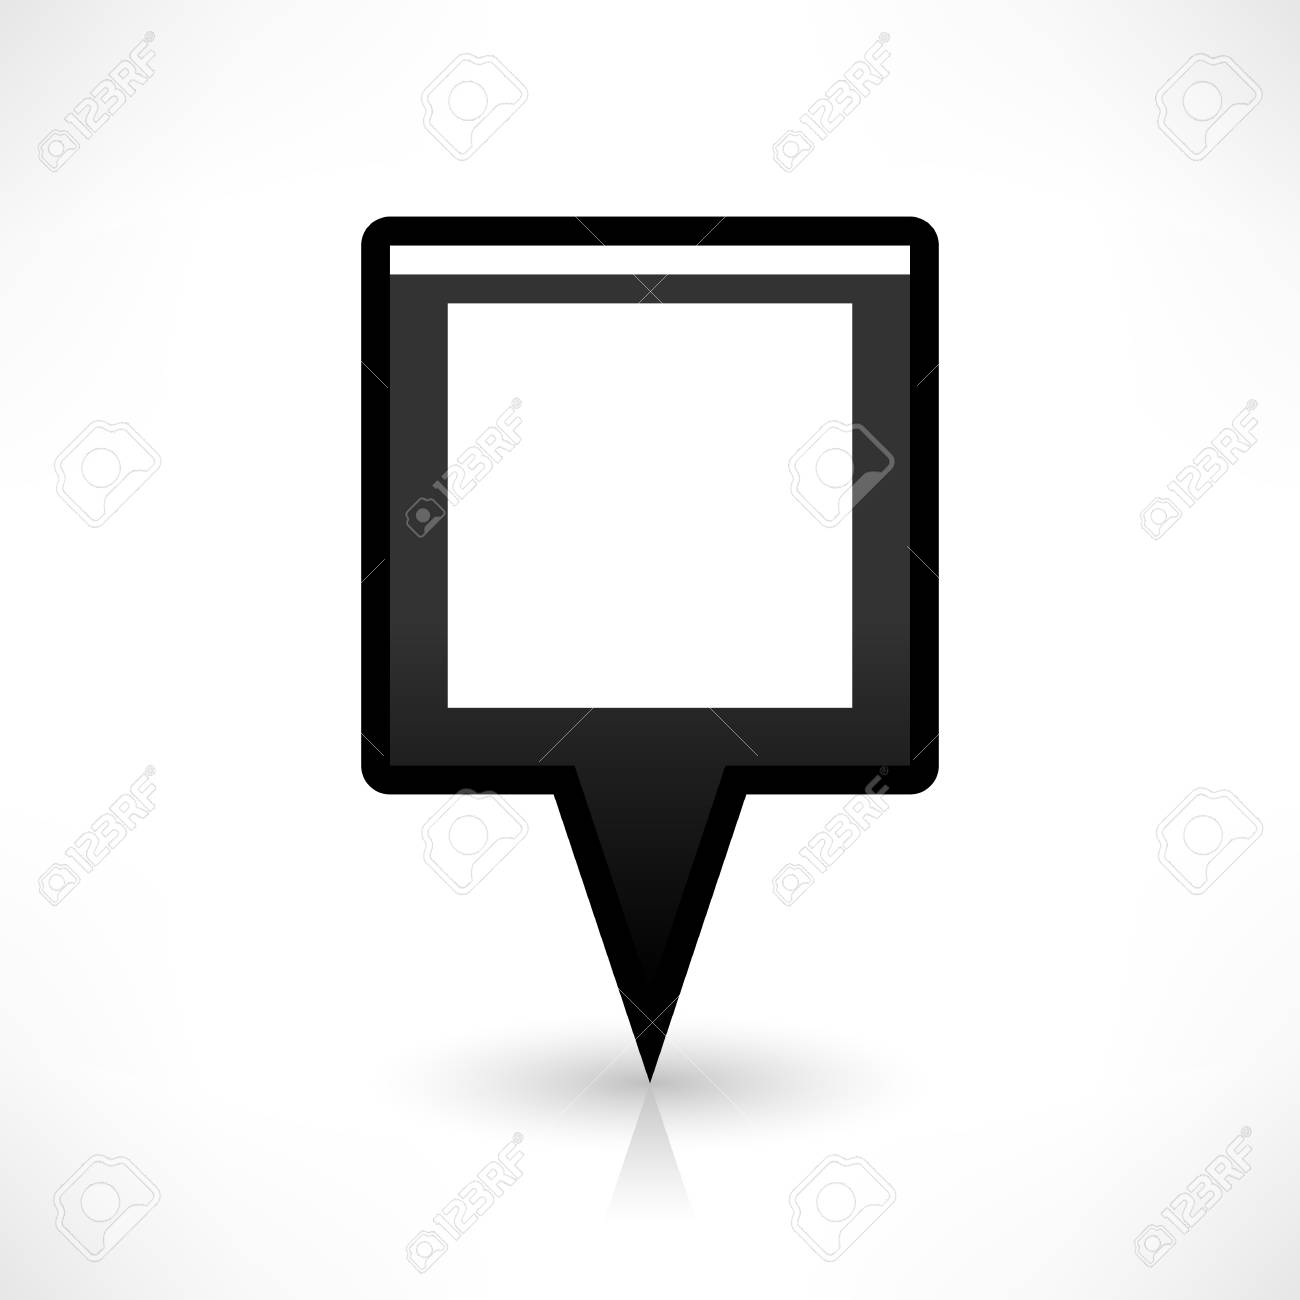 Map pin location sign rounded square icon in flat style  Simple